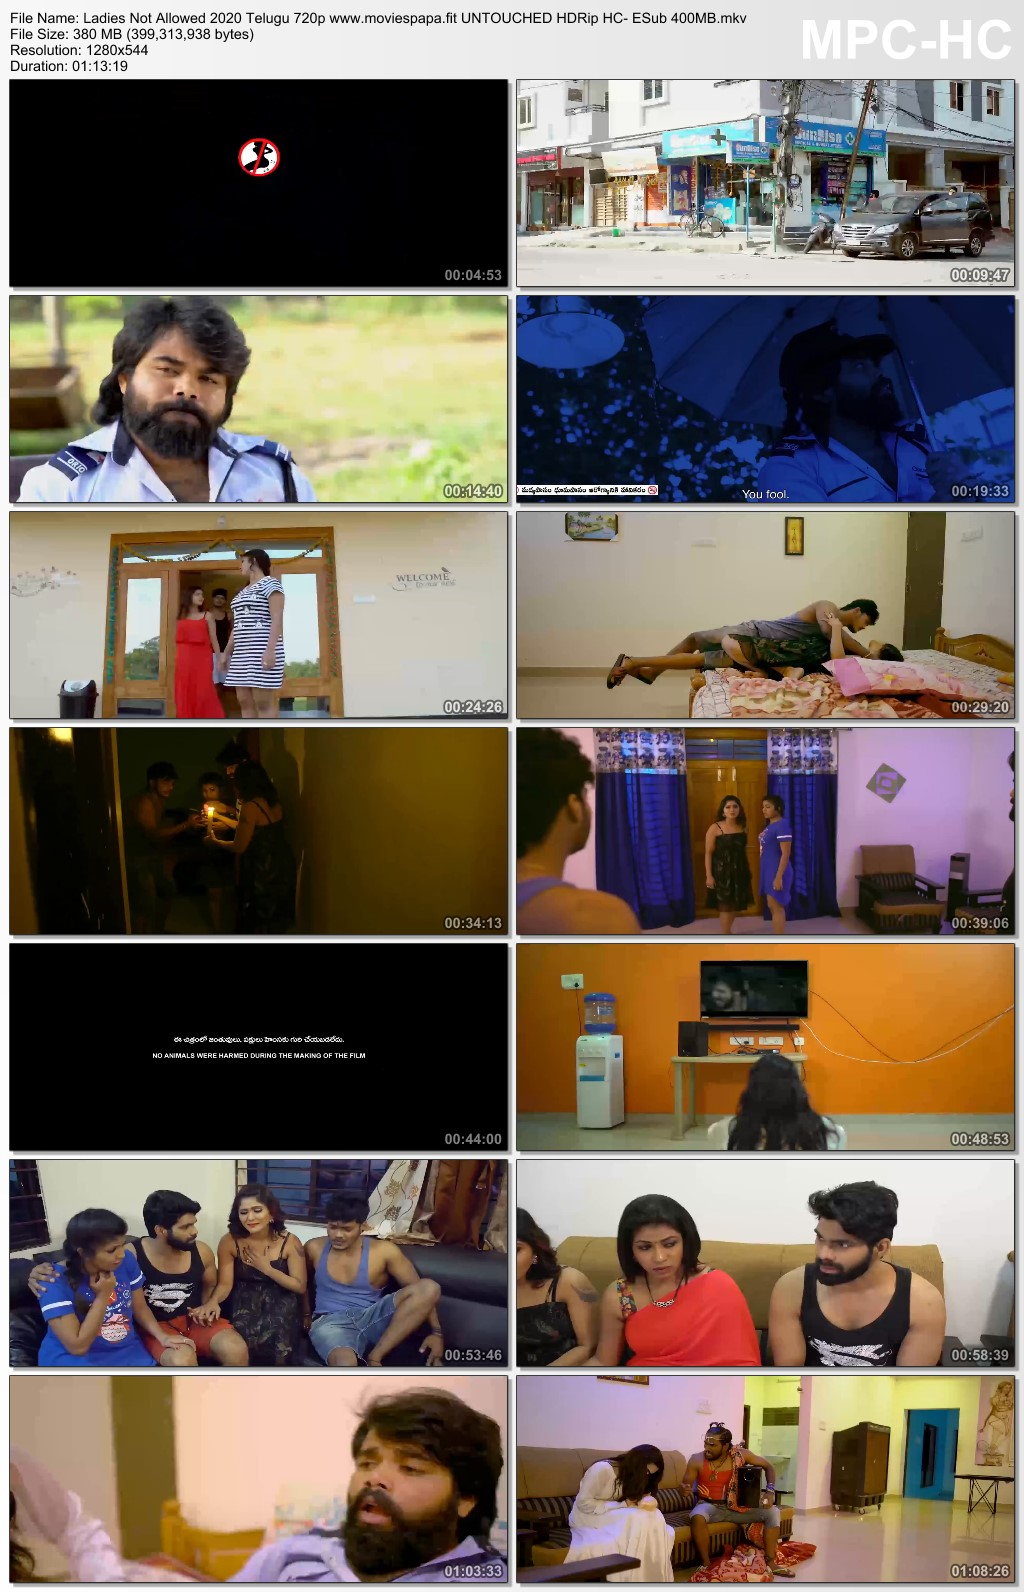 Ladies Not Allowed 2020 Telugu 720p UNTOUCHED HDRip HC- ESub 390MB Download